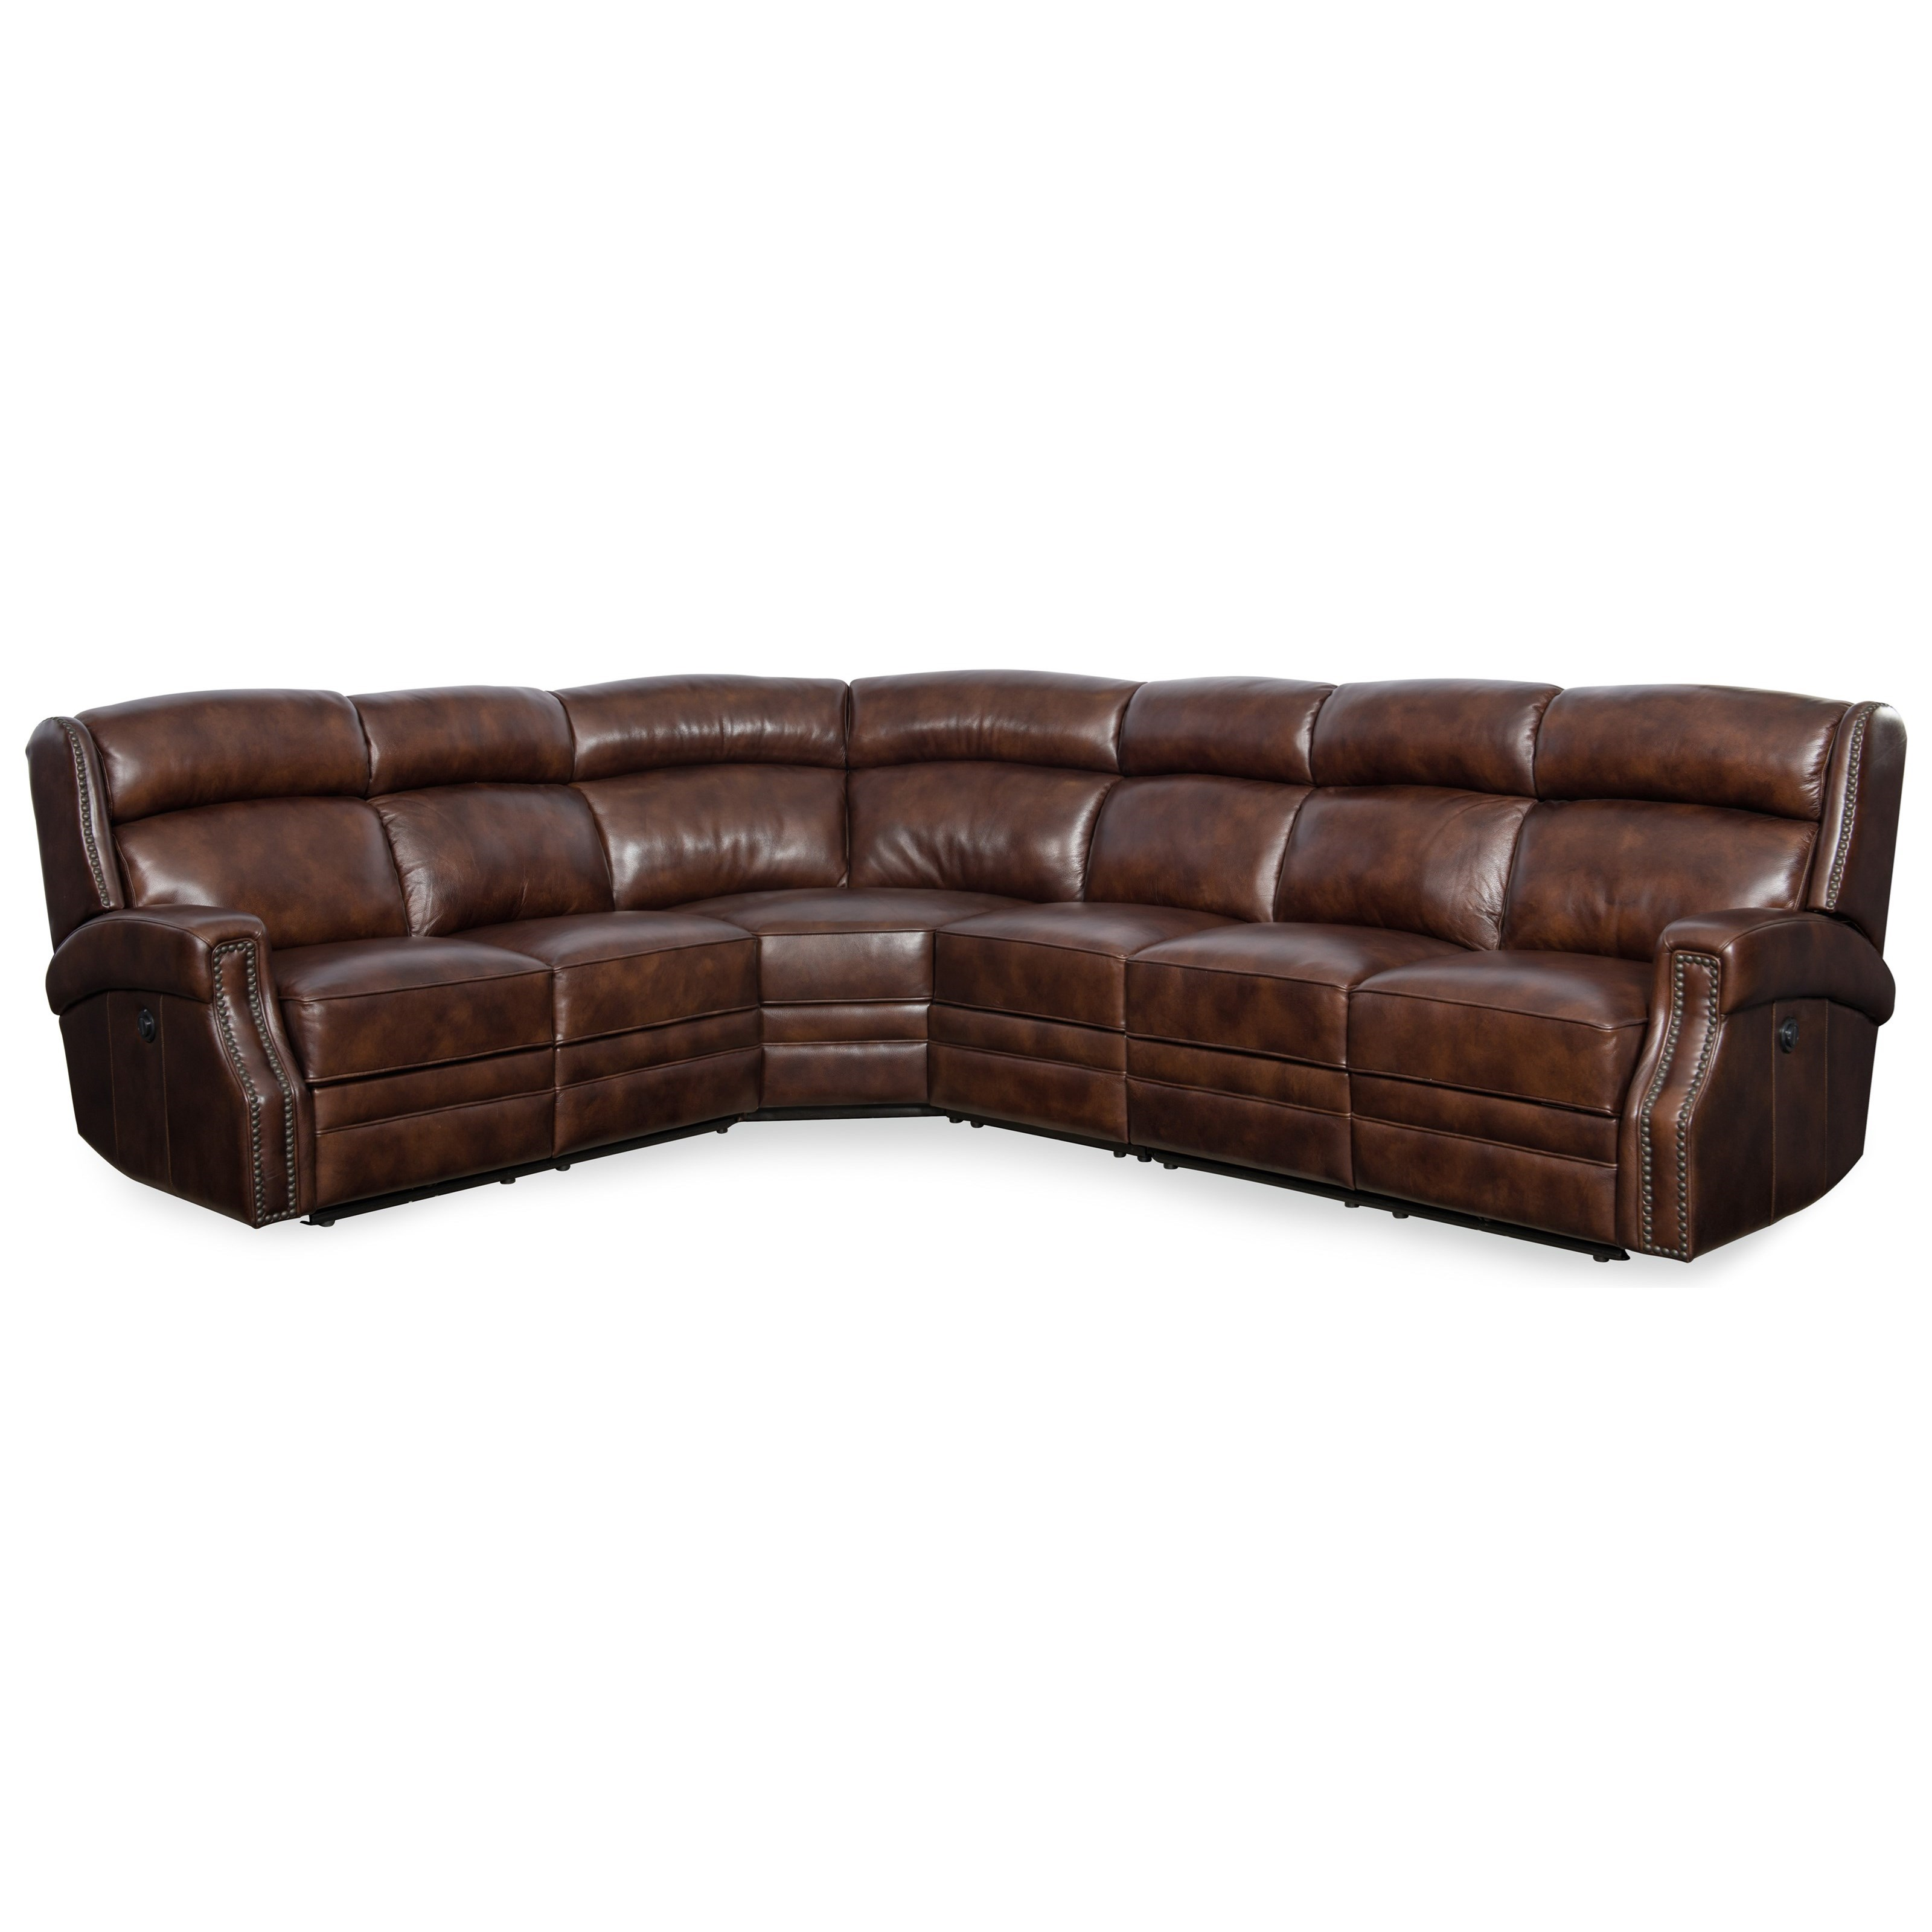 Carlisle Power Reclining Sectional by Hooker Furniture at Baer's Furniture